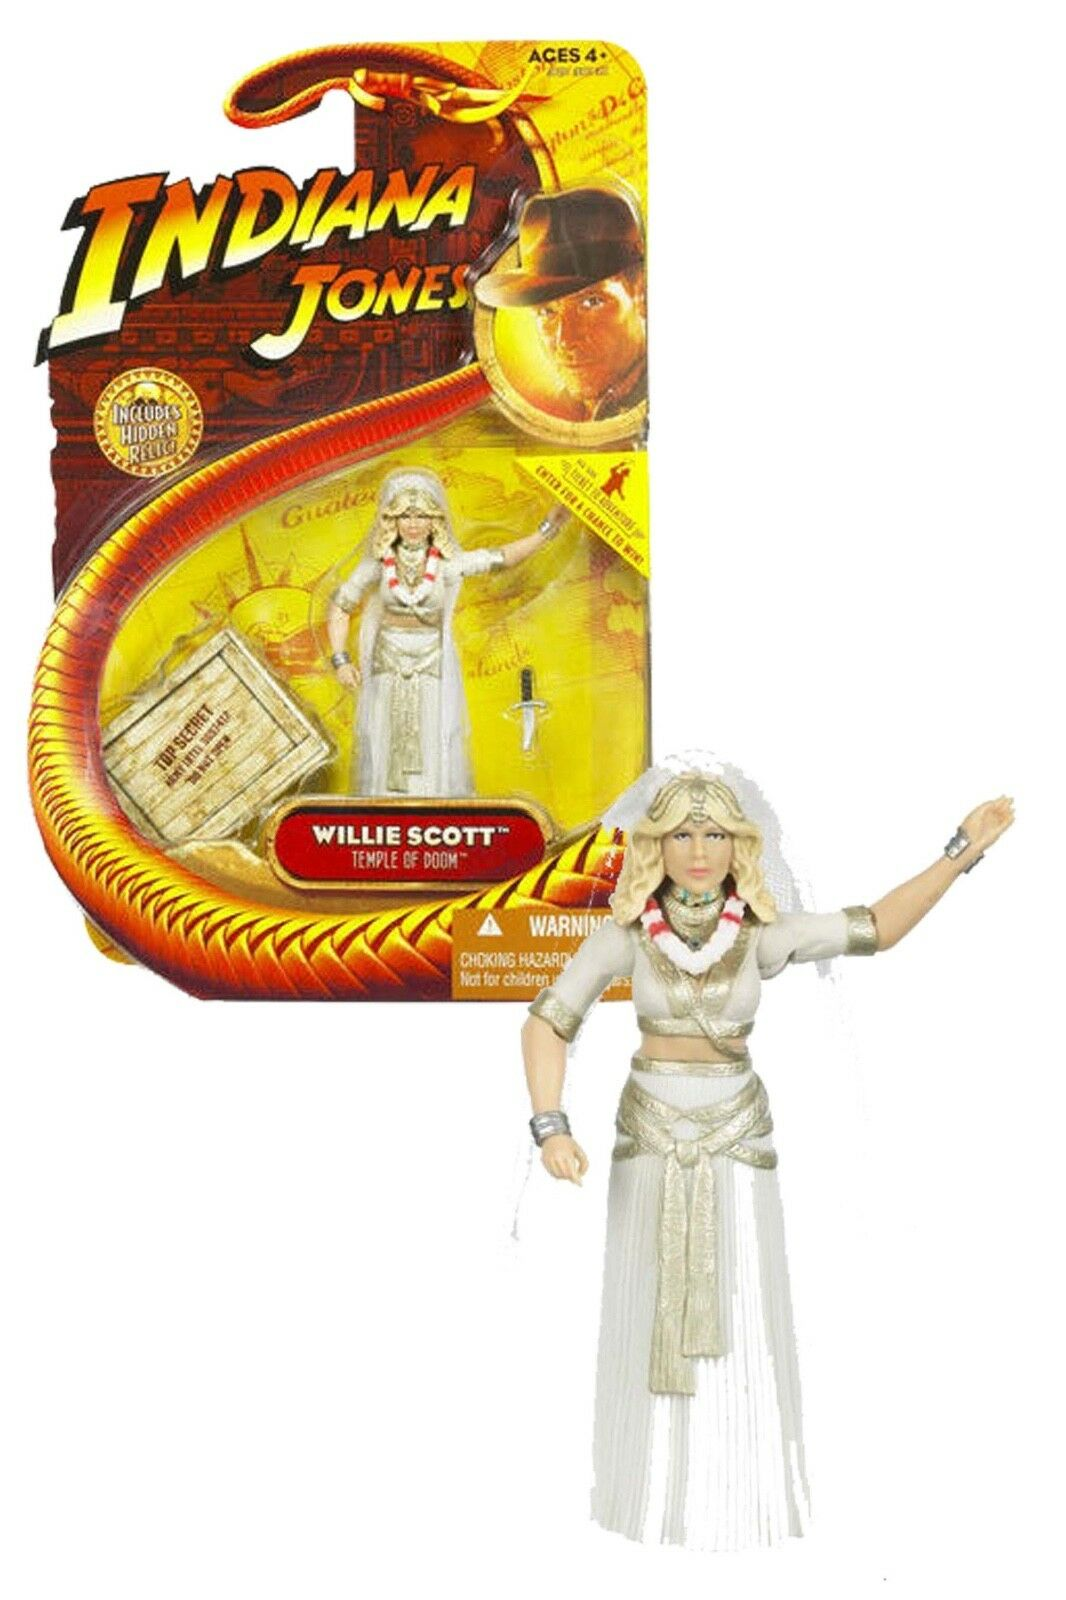 NEW 2008 Willie Scott 3 3 4 Indiana Jones Temple Doom Action Figure by Hasbro